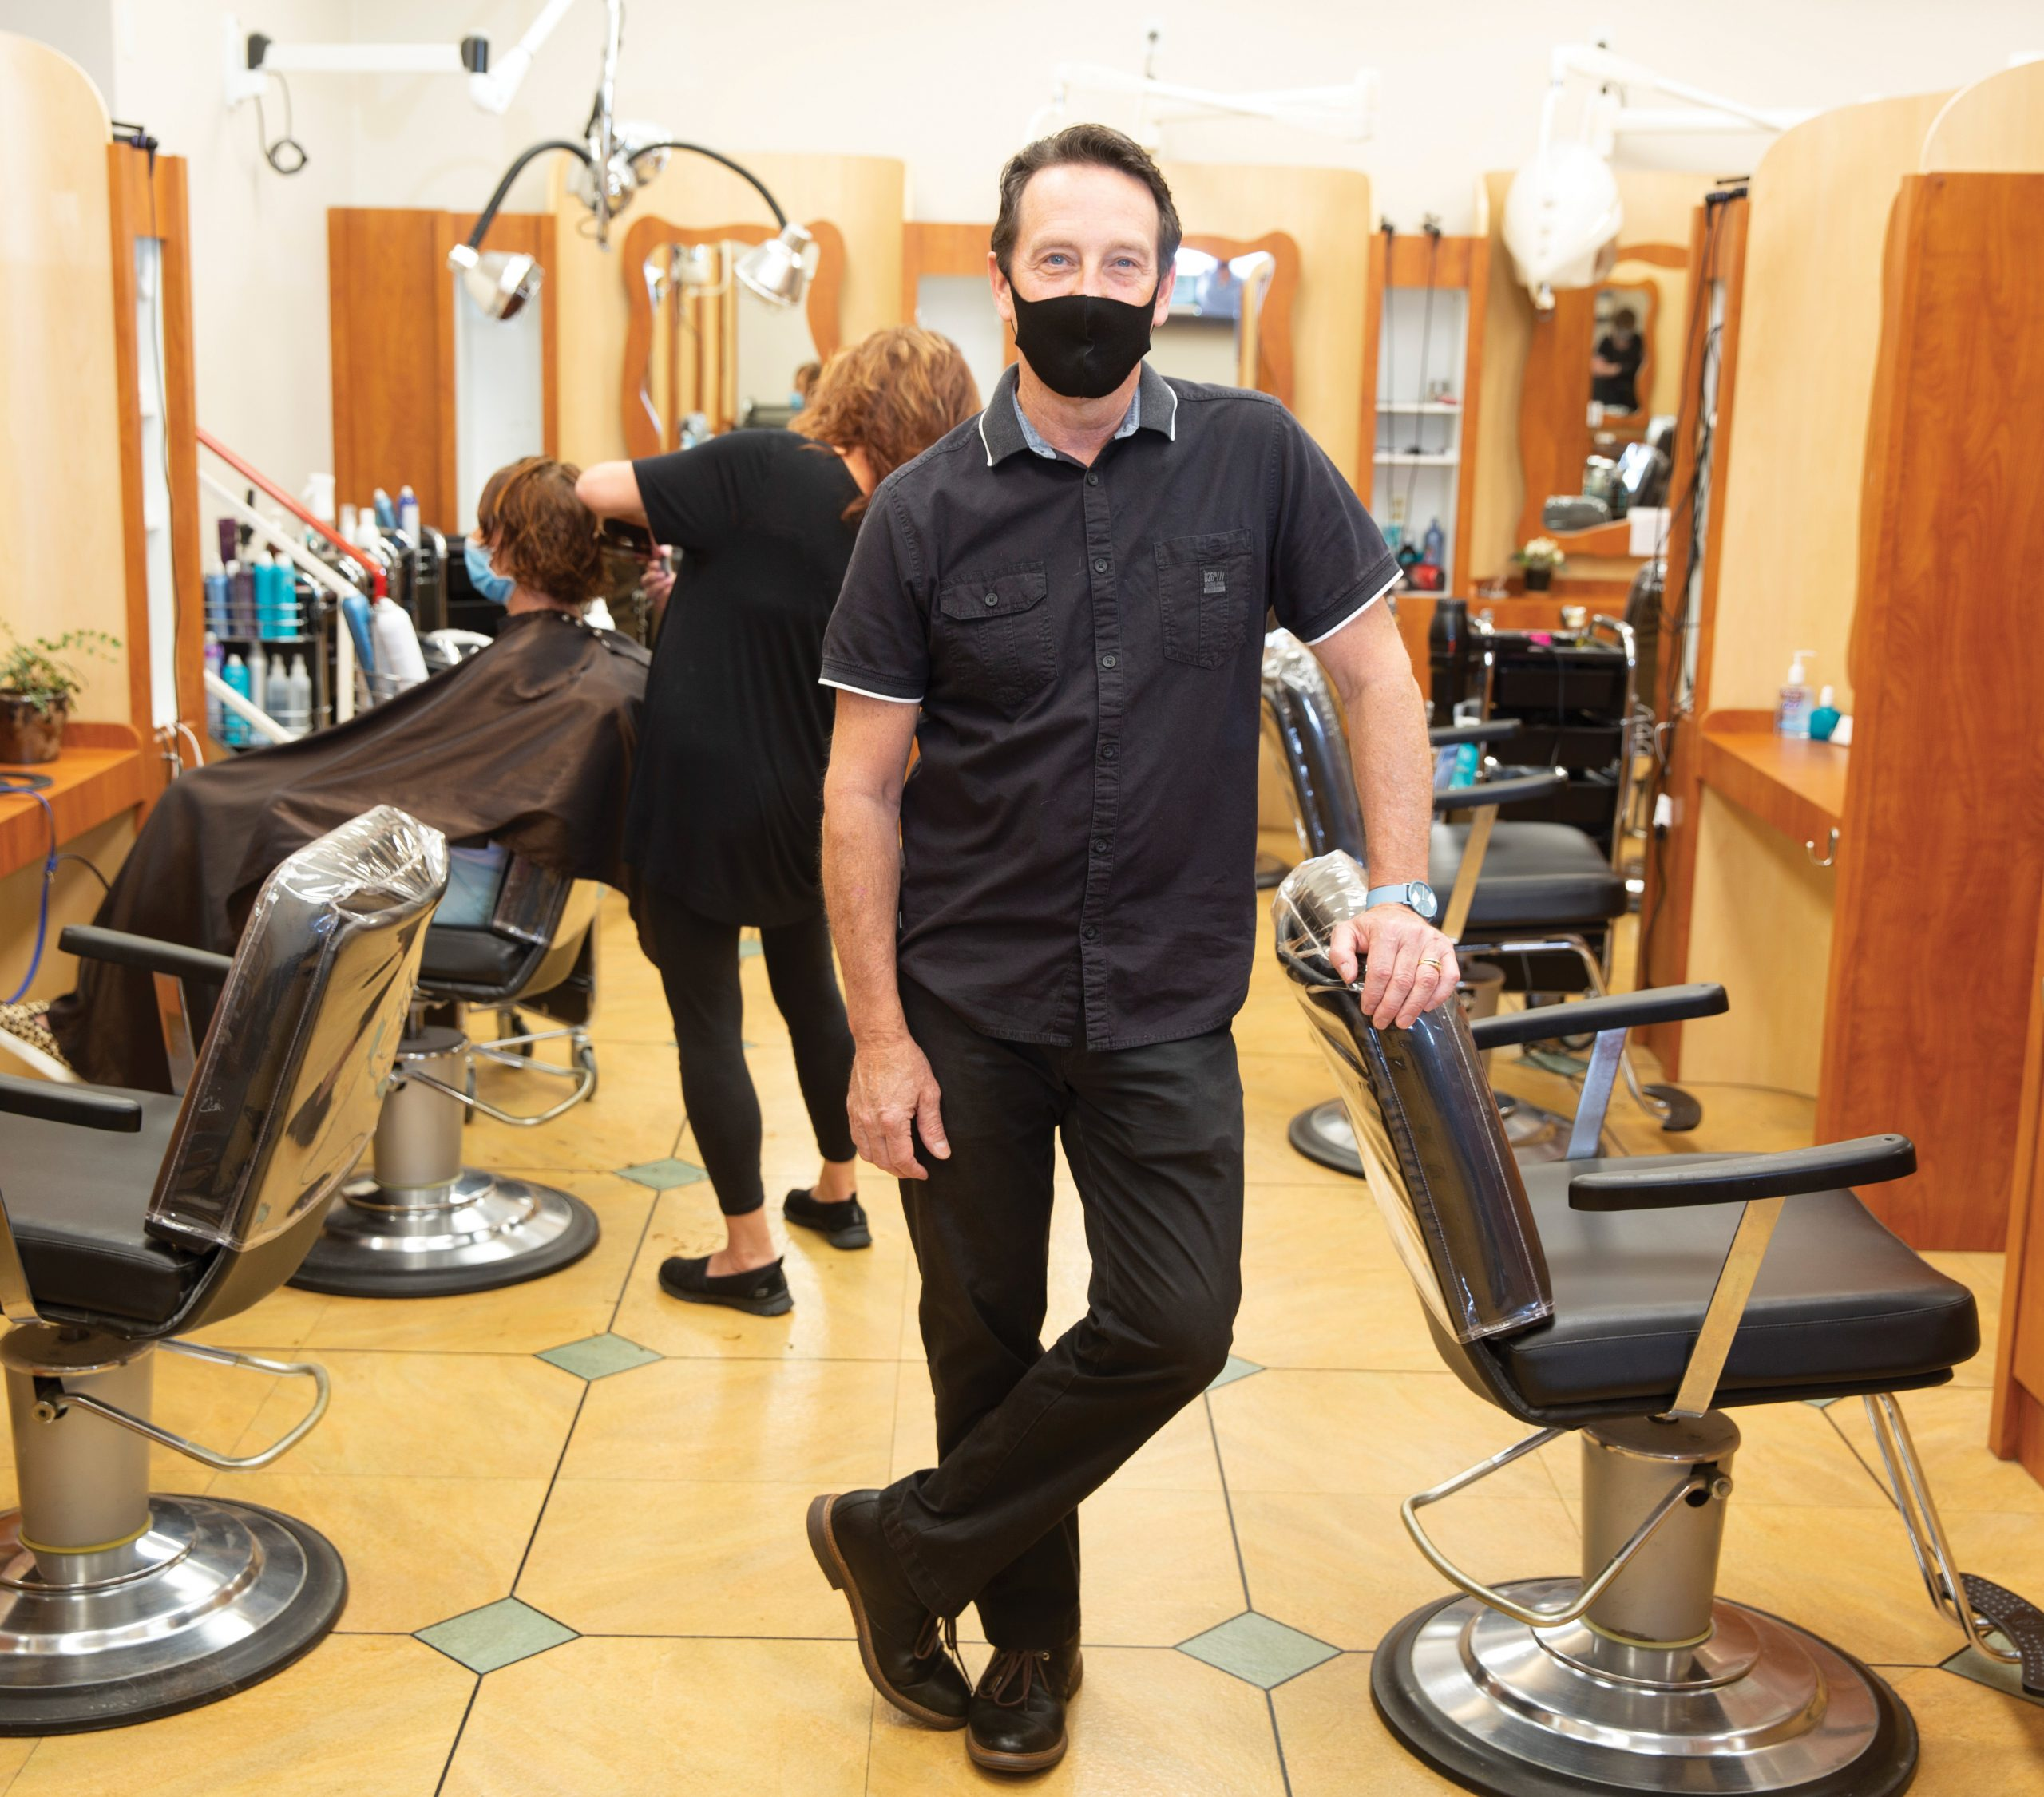 A Celebration for All at Peter's Salon & European Spa